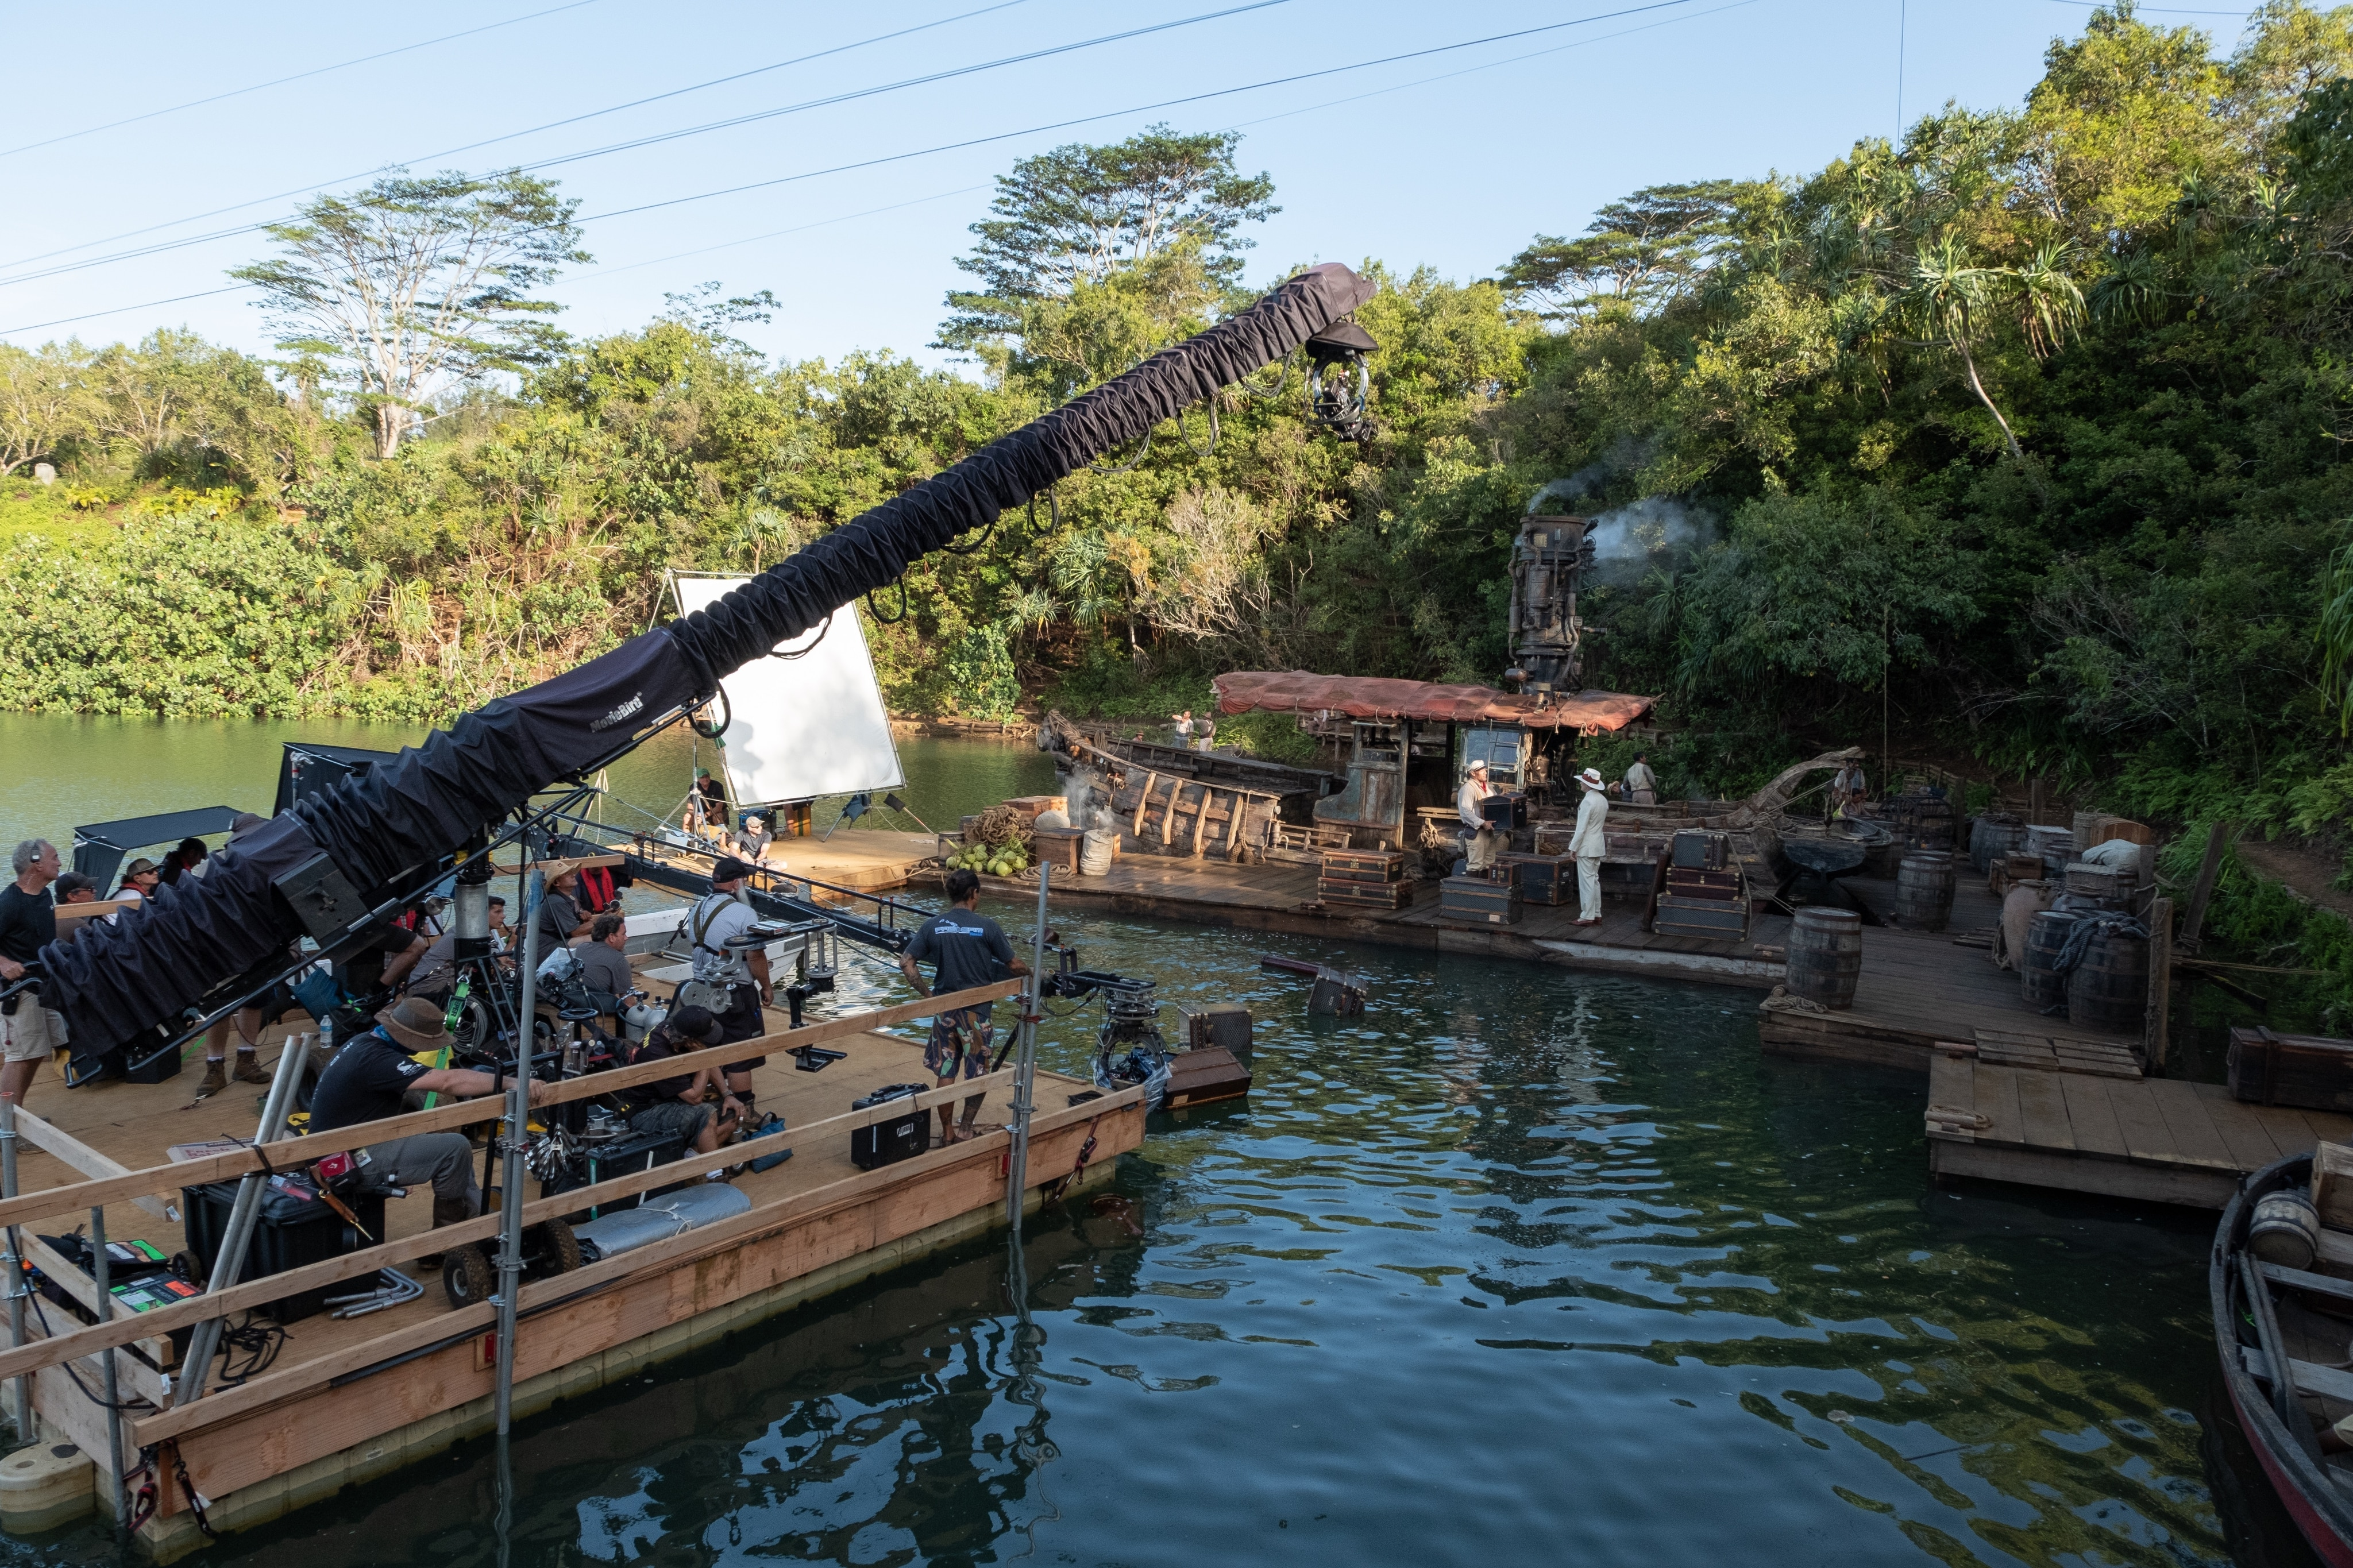 Behind the scenes photo of camera crew on set filming Dwayne Johnson and Jack Whitehall at the docking area surrounded by water.